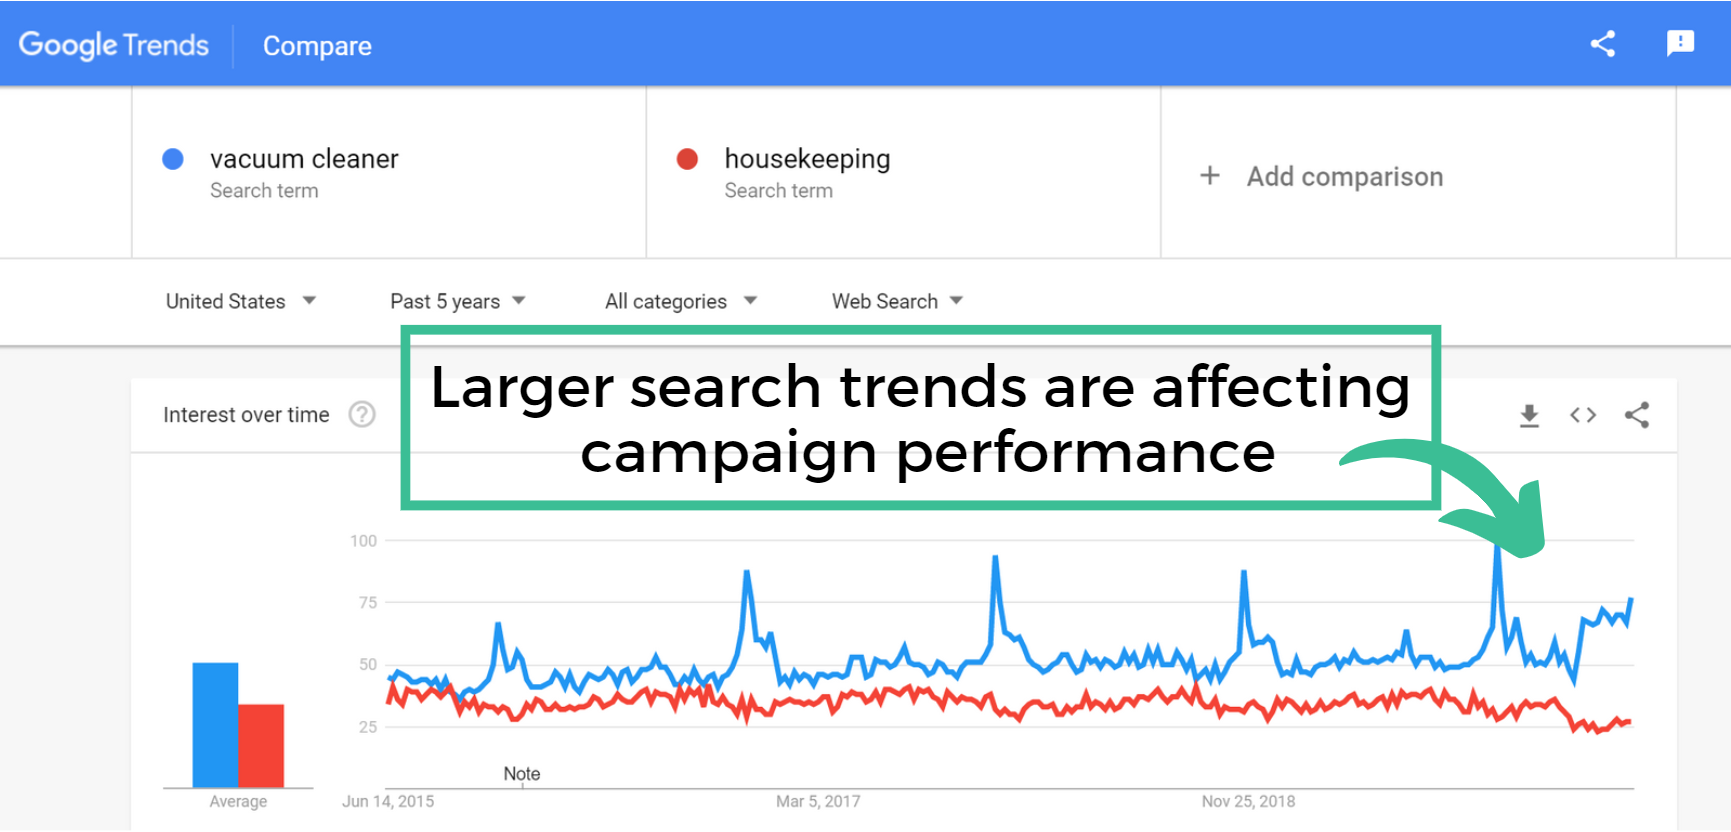 google trends chart of vacuum cleaner vs housekeeping